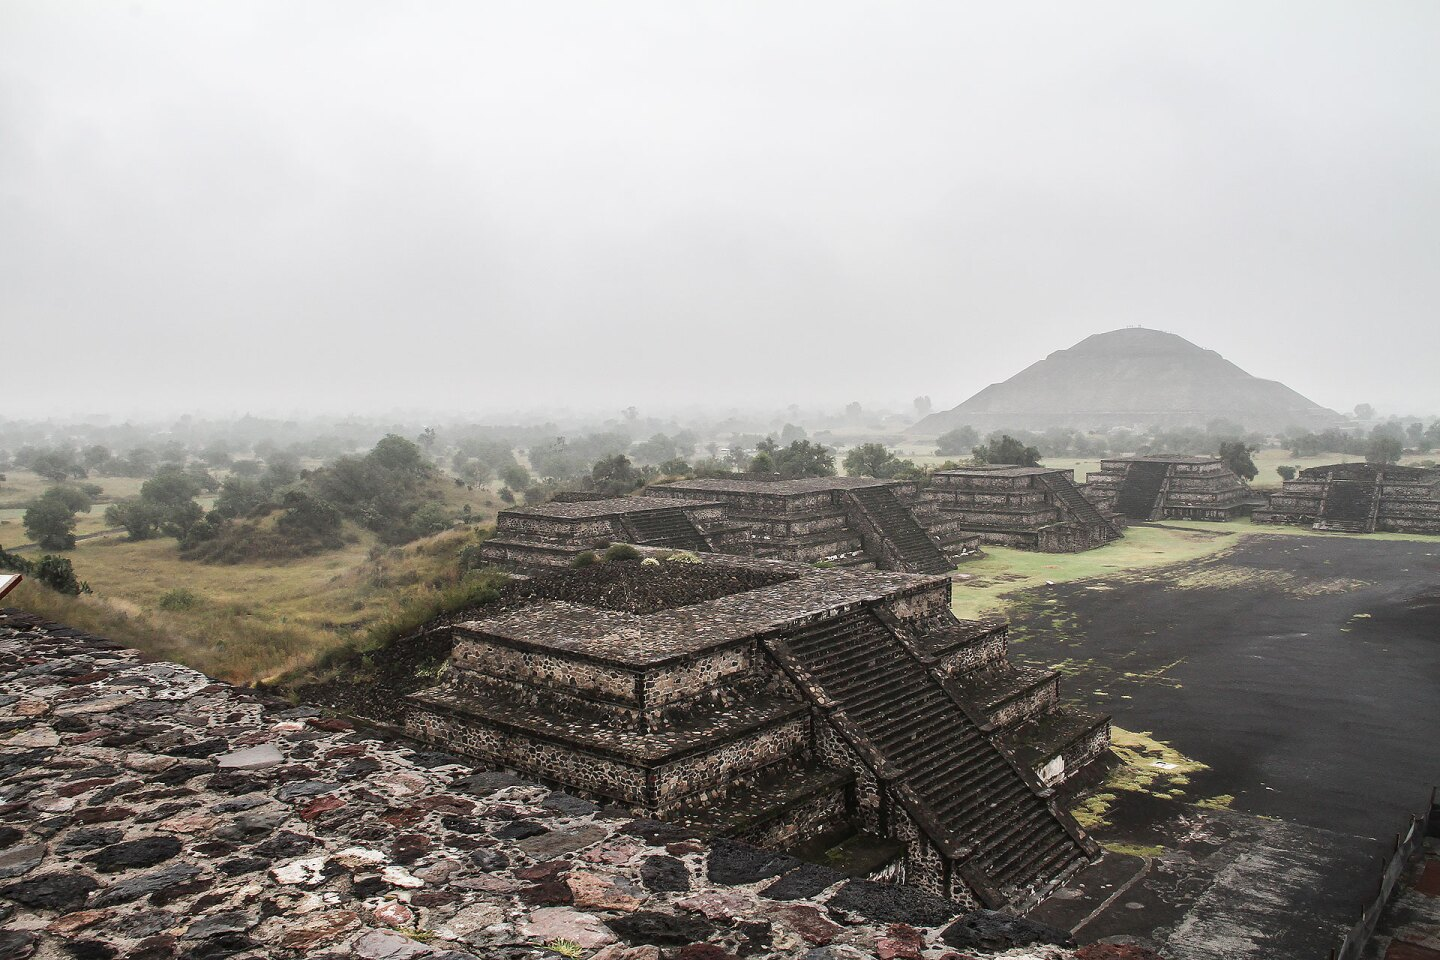 secrets of the dead teotihuacan's lost king